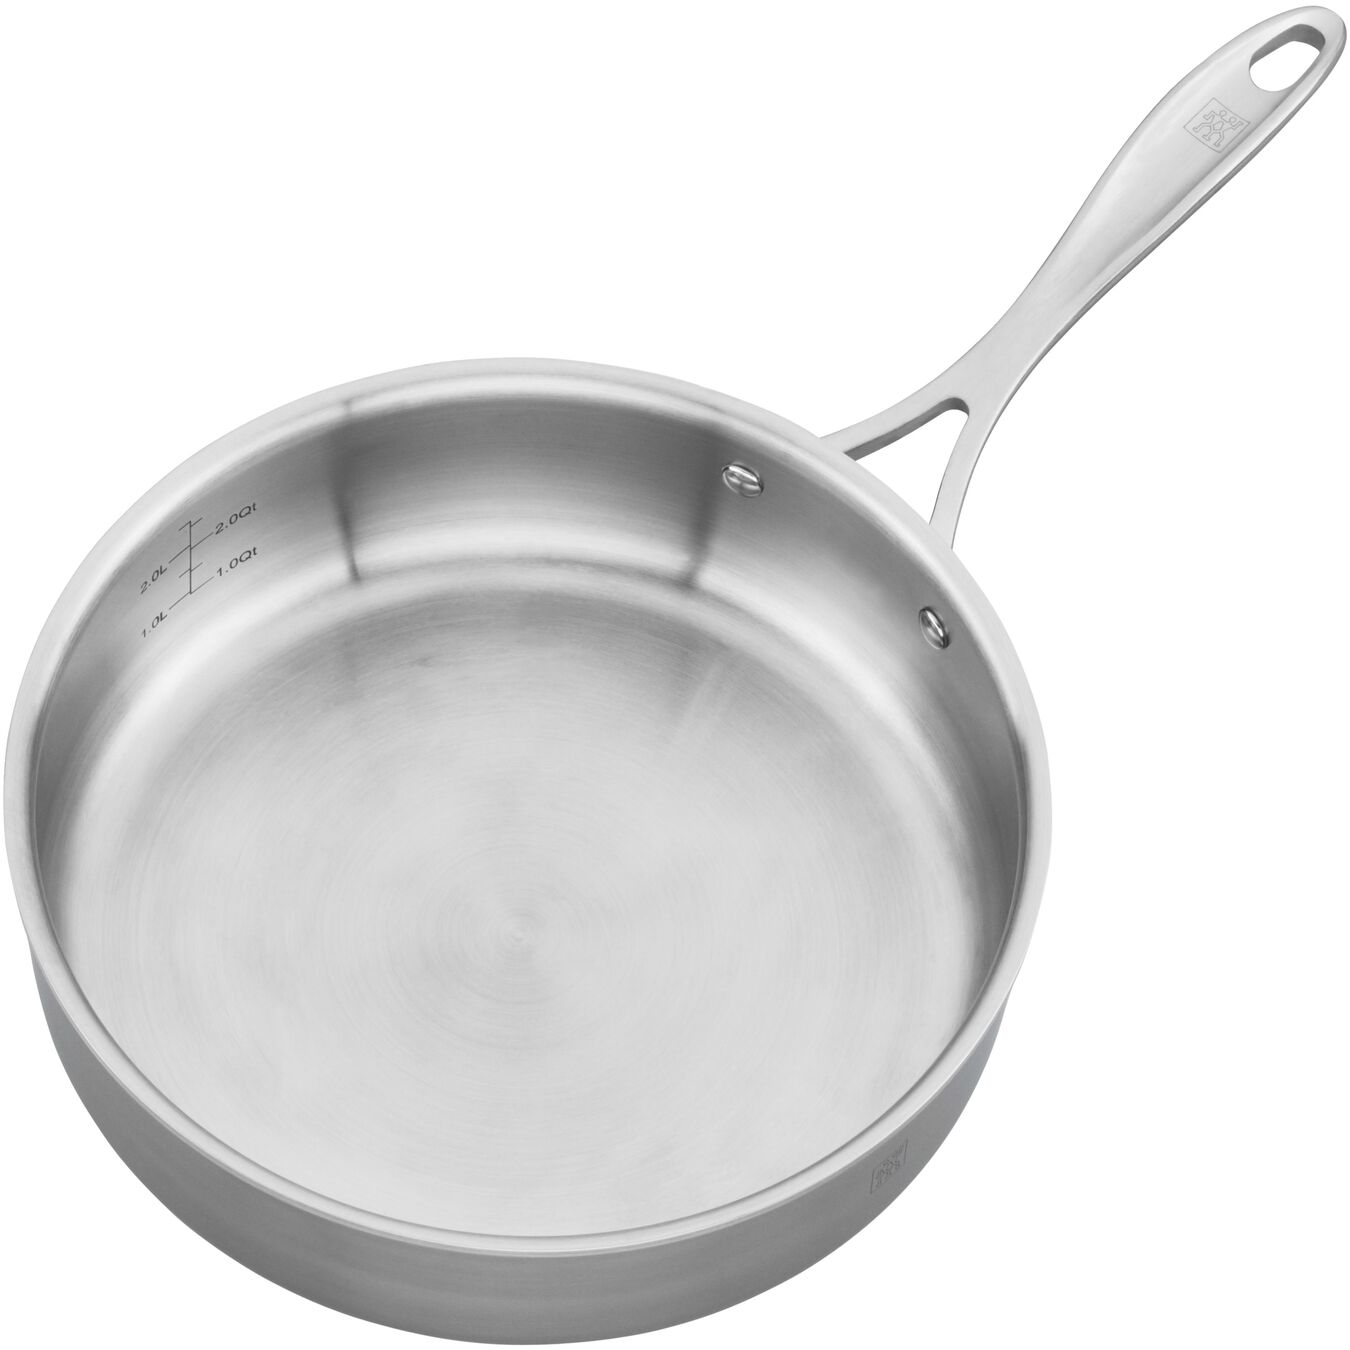 9.5-inch, 18/10 Stainless Steel, Non-stick, Saute pan,,large 3